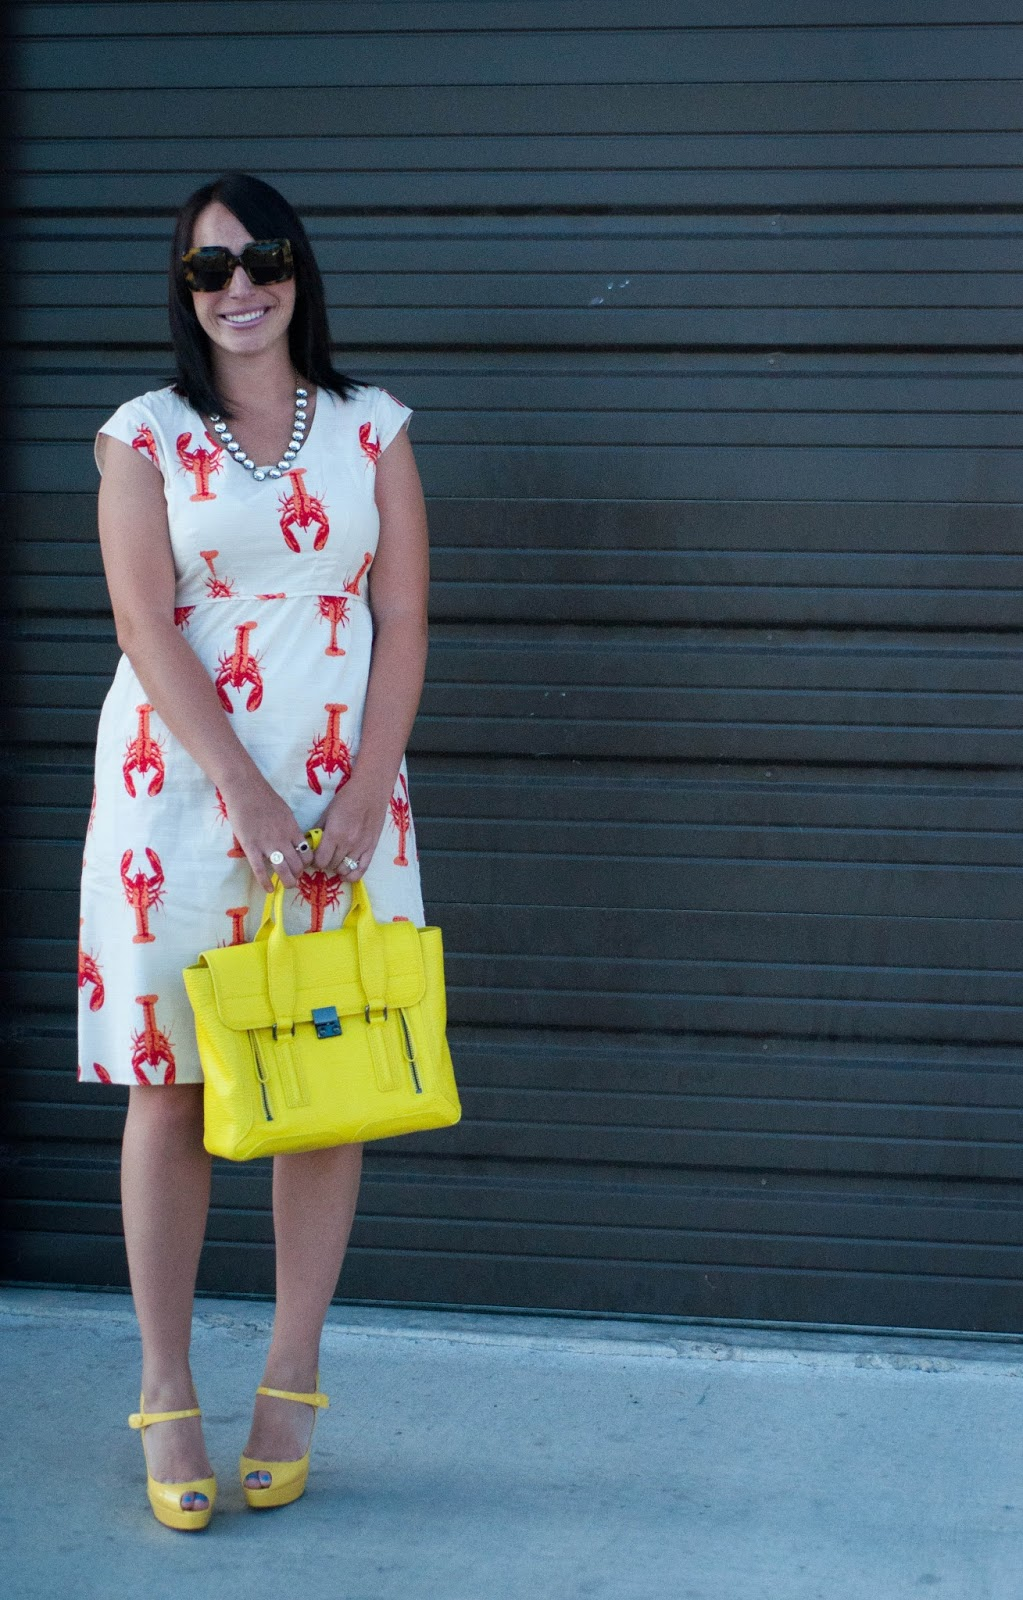 ootd, jcrew necklace, 3.1 phillip lim pashli satchel, lobster dress, karen walker sunglasses, red soles